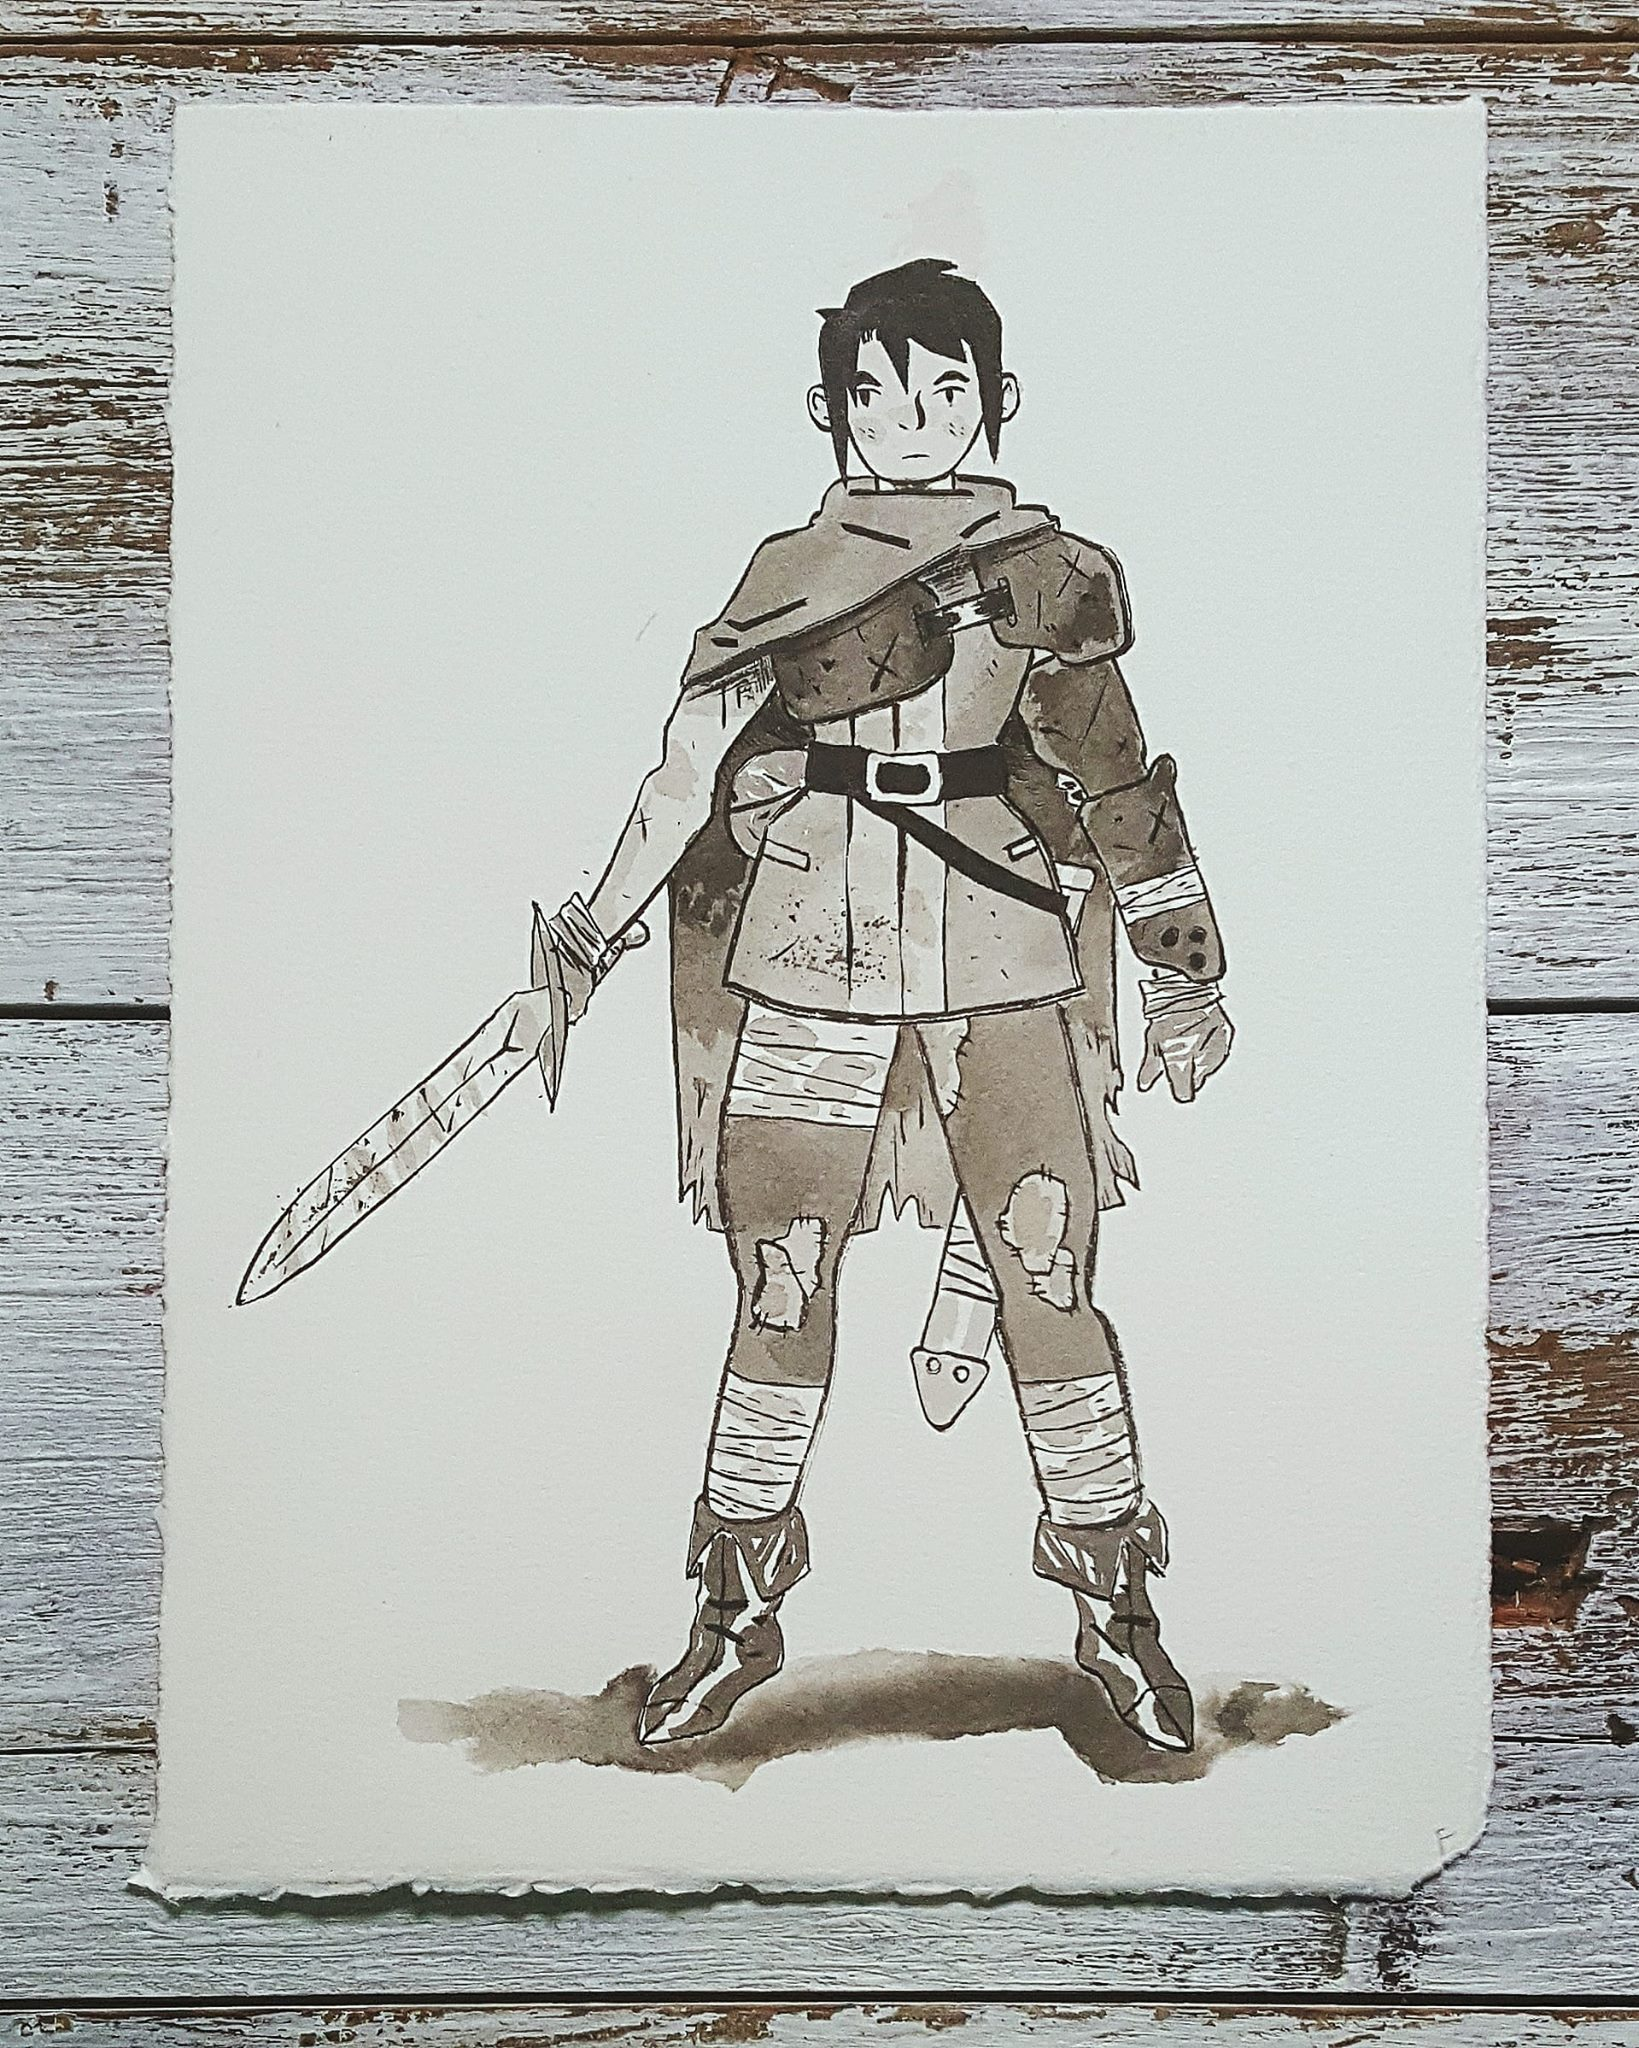 A Knight a Day No. 15, Young Adventurer - A few years into her quest for adventure, Mar has become a formidable fighter, a far cry from the fish seller she used to be. After surving a few battles and bearing a few scars, the reality of the life of an adventurer is becoming clearer and clearer to her.